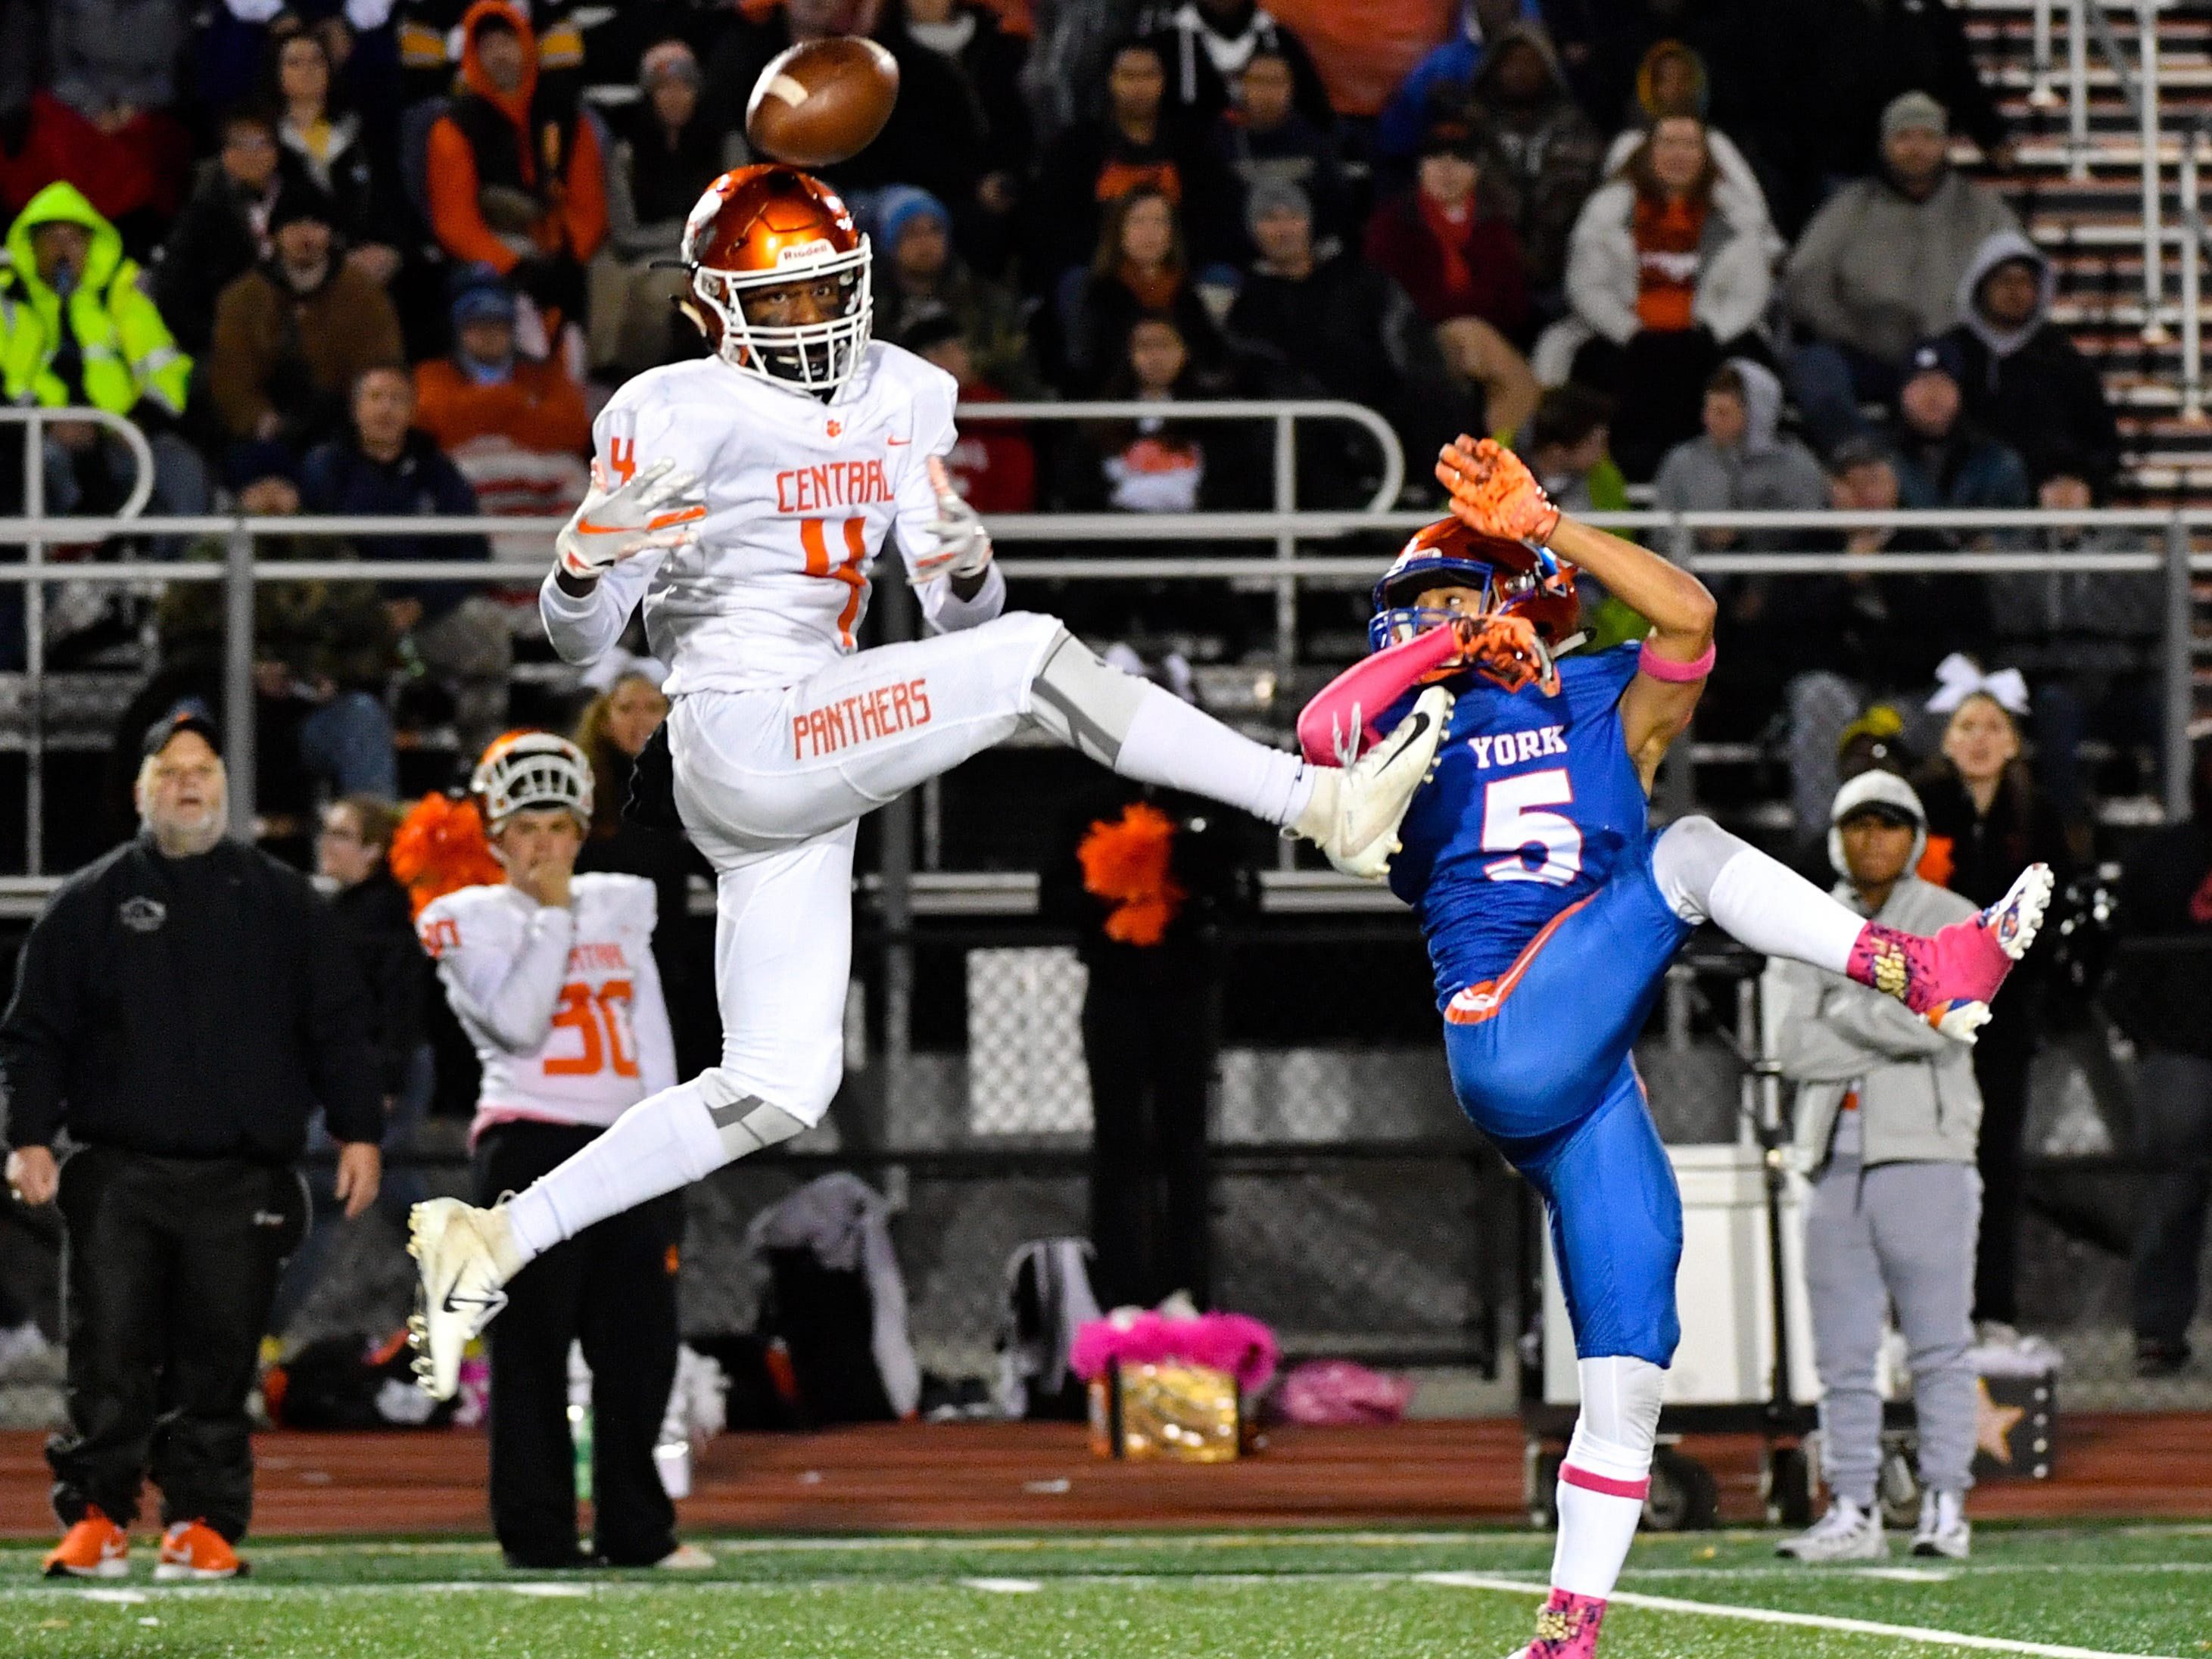 Saahir Cornelius (4) of Central York rises up to receive the ball during the YAIAA Division I title game at Smalls Athletic Field, Friday, October 26, 2018. The York High Bearcats defeated the Central York Panthers 54-14.